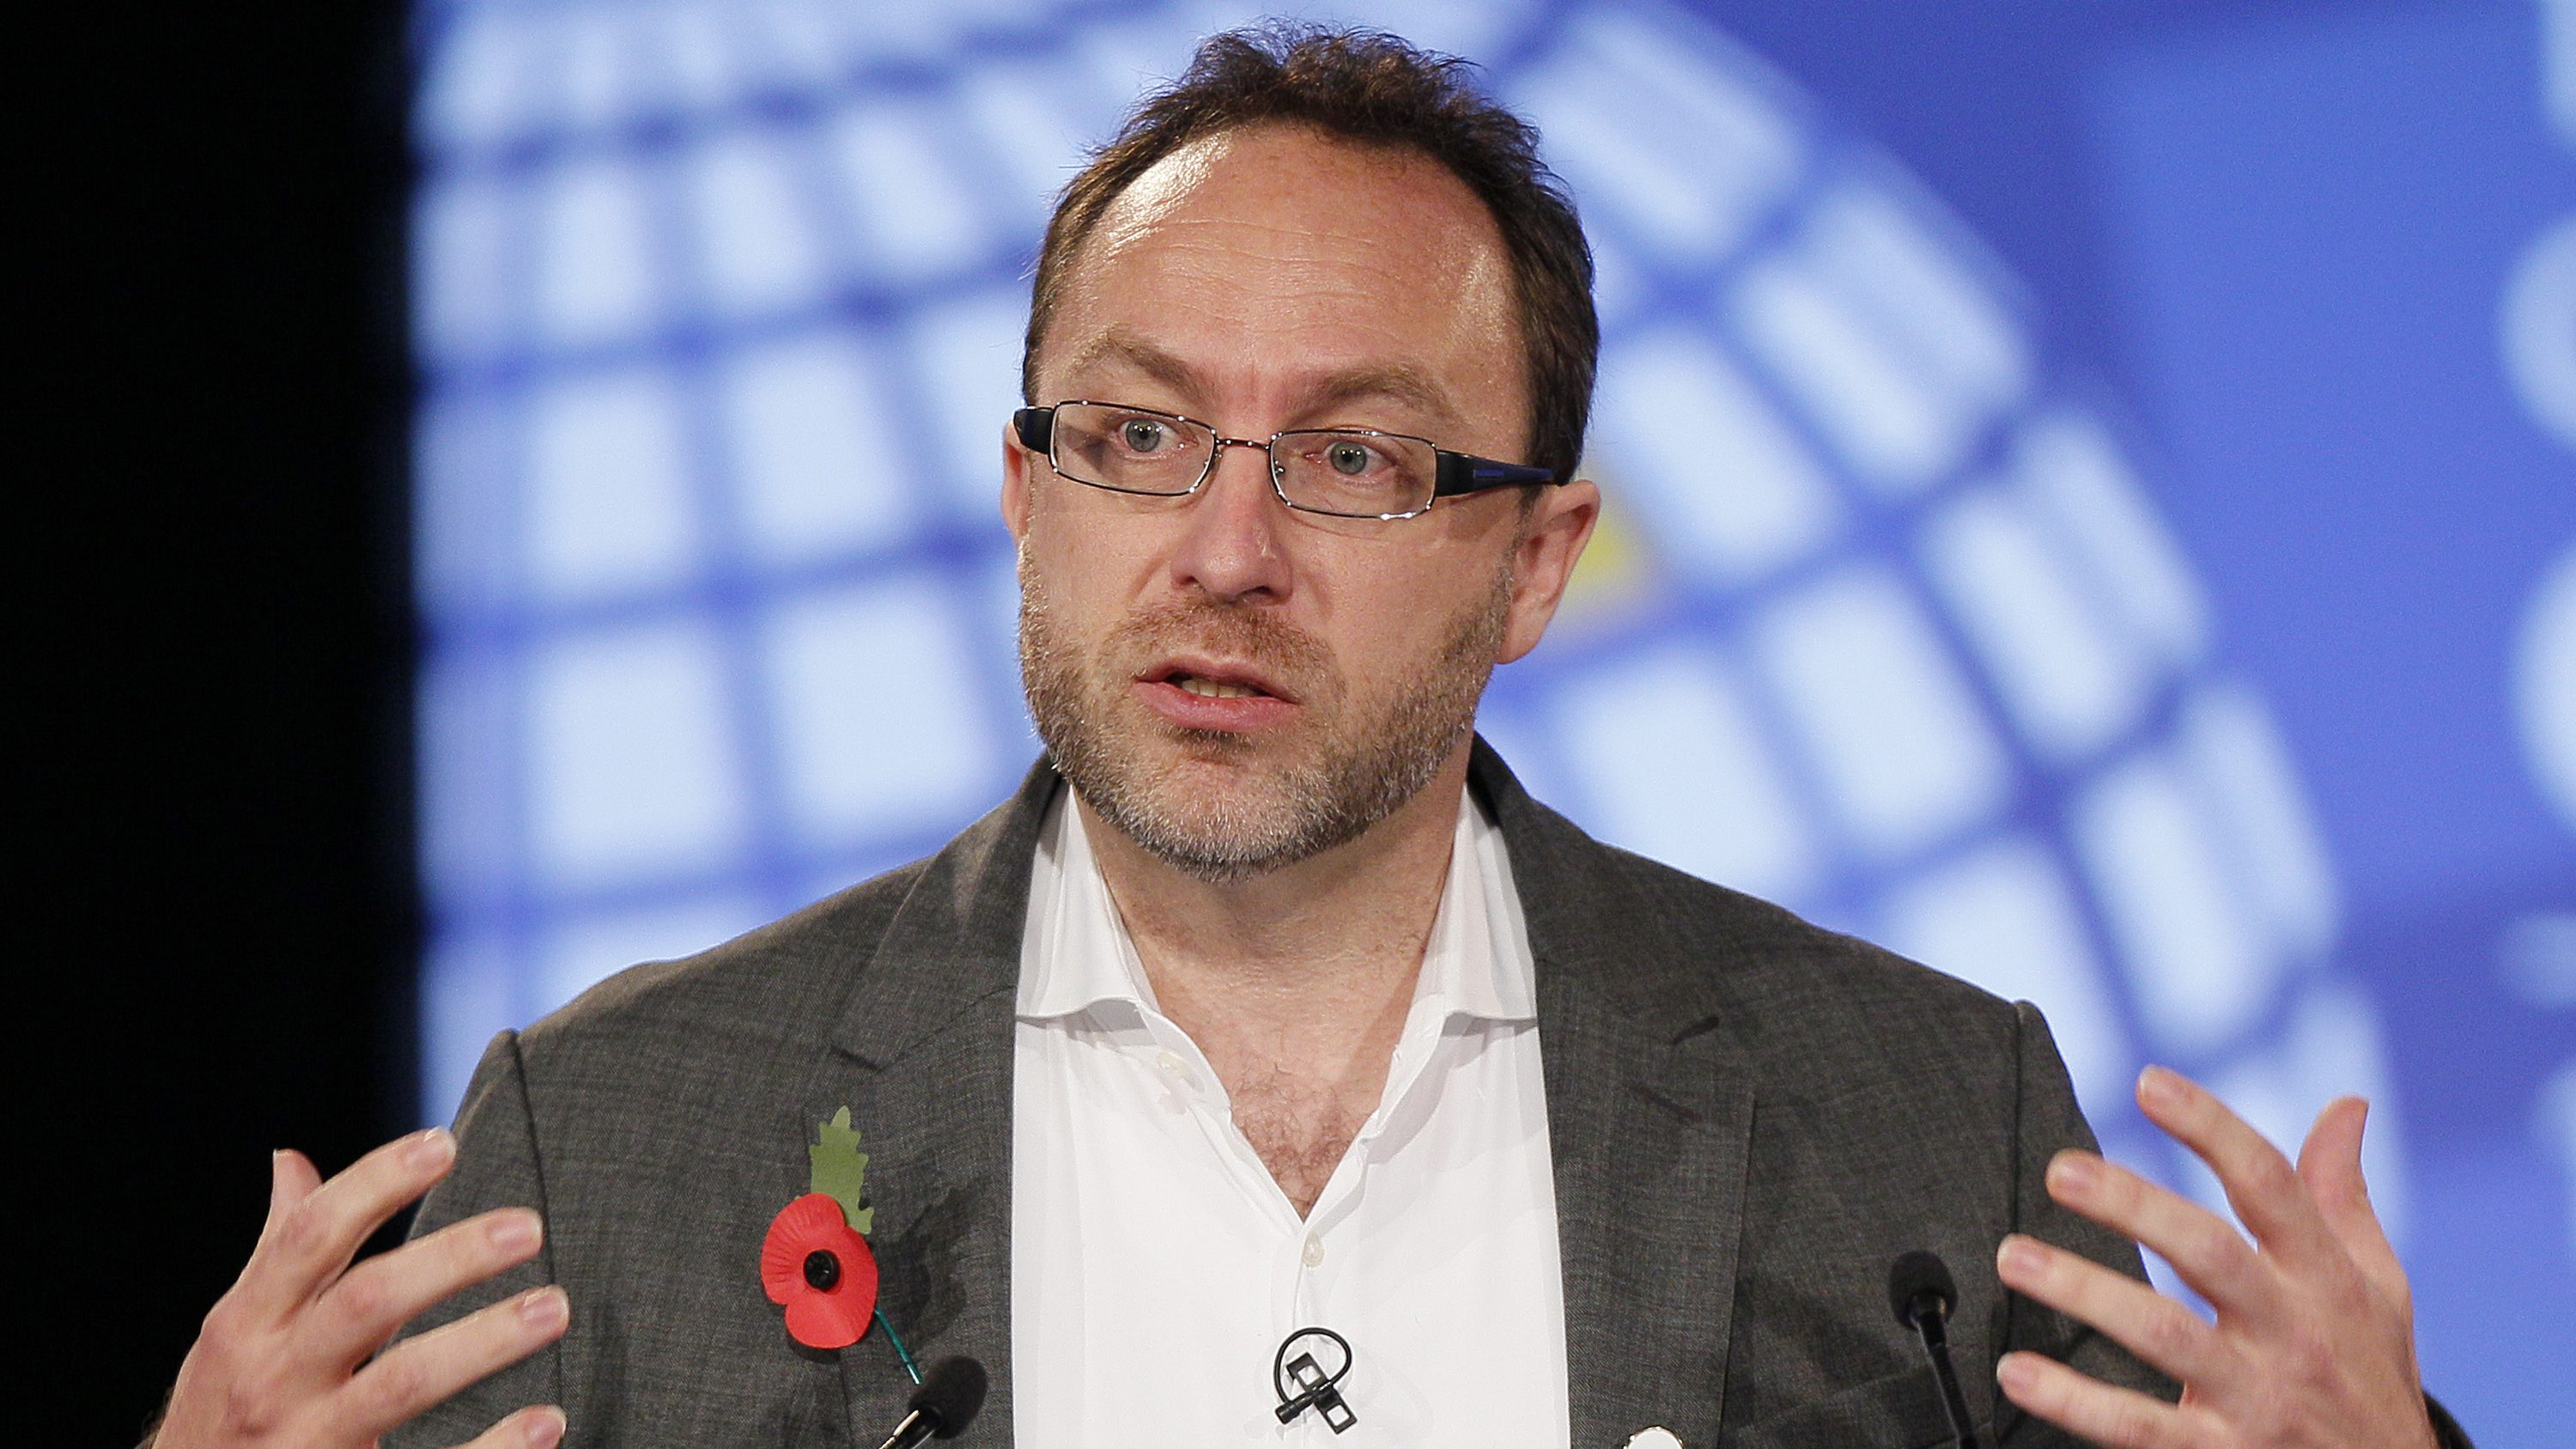 Wikipedia founder Jimmy Wales gestures during the opening session at the London Cyberspace Conference in London November 1, 2011. Britain rejected calls from China and Russia for greater Internet controls on Tuesday at the opening of a major cyberspace conference but was criticised for suggesting curbs on social media after recent riots.